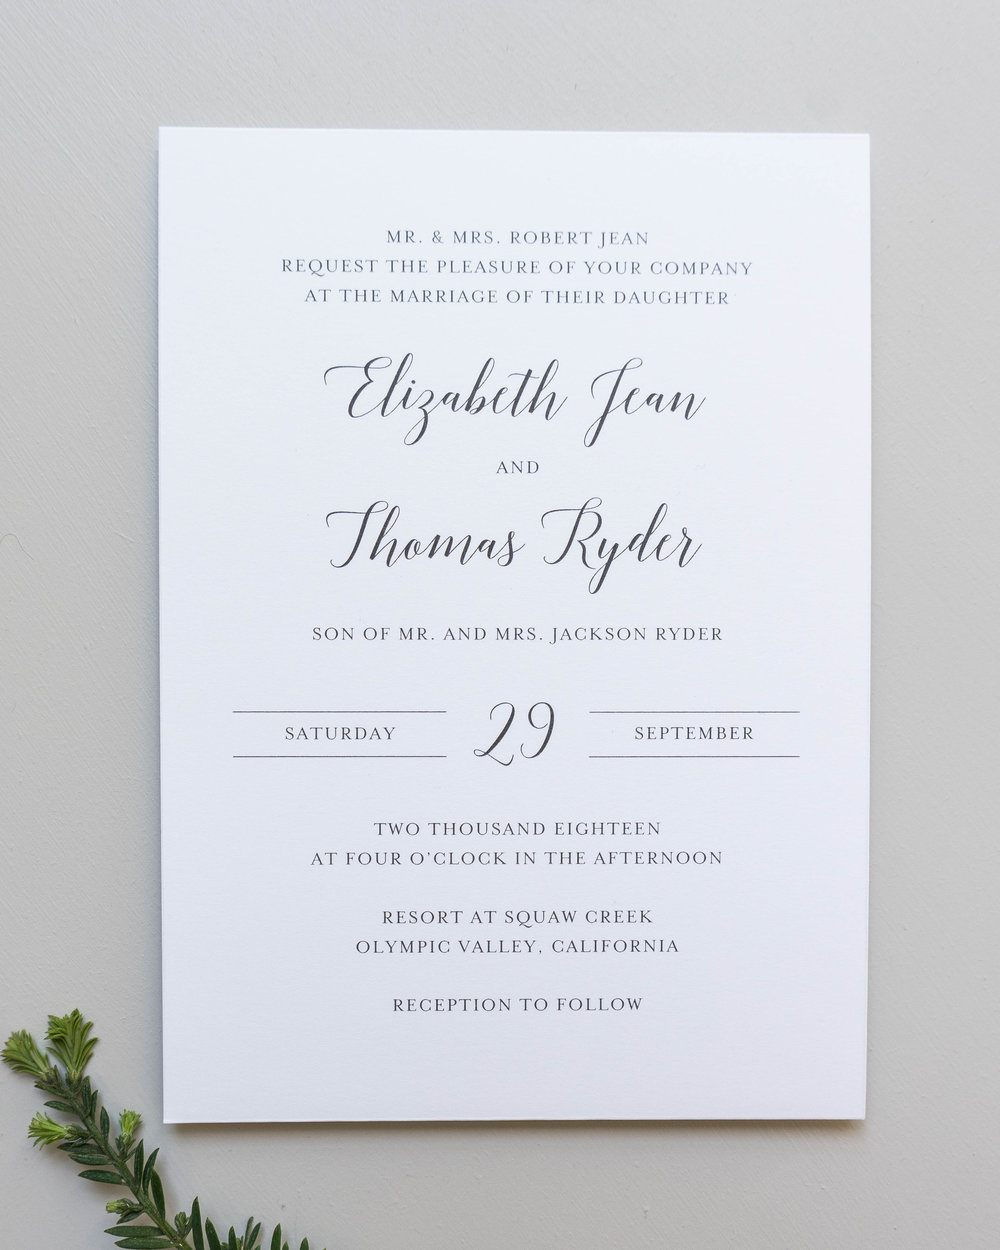 *Elegant Mountain Wedding Invitations by Just Jurf-7.jpg